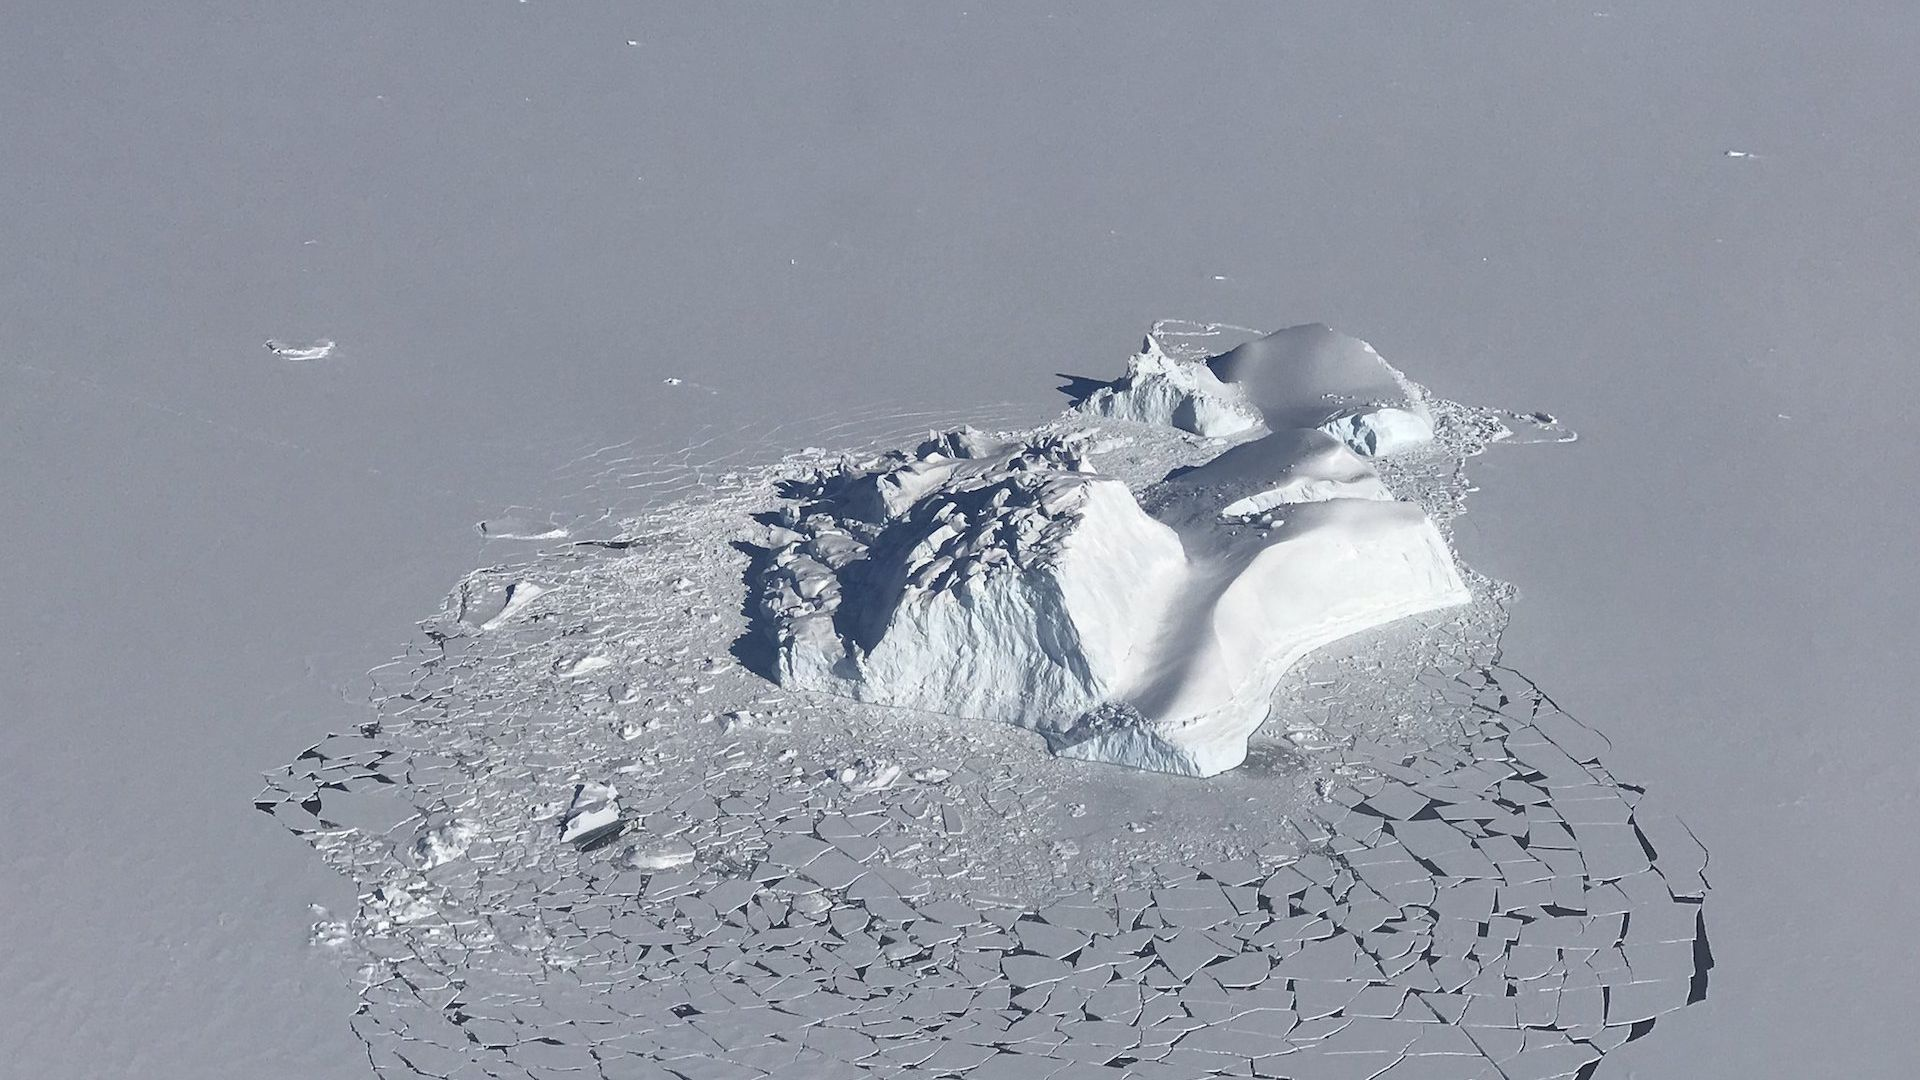 A large iceberg has broken the surrounding layer of consolidated sea ice.